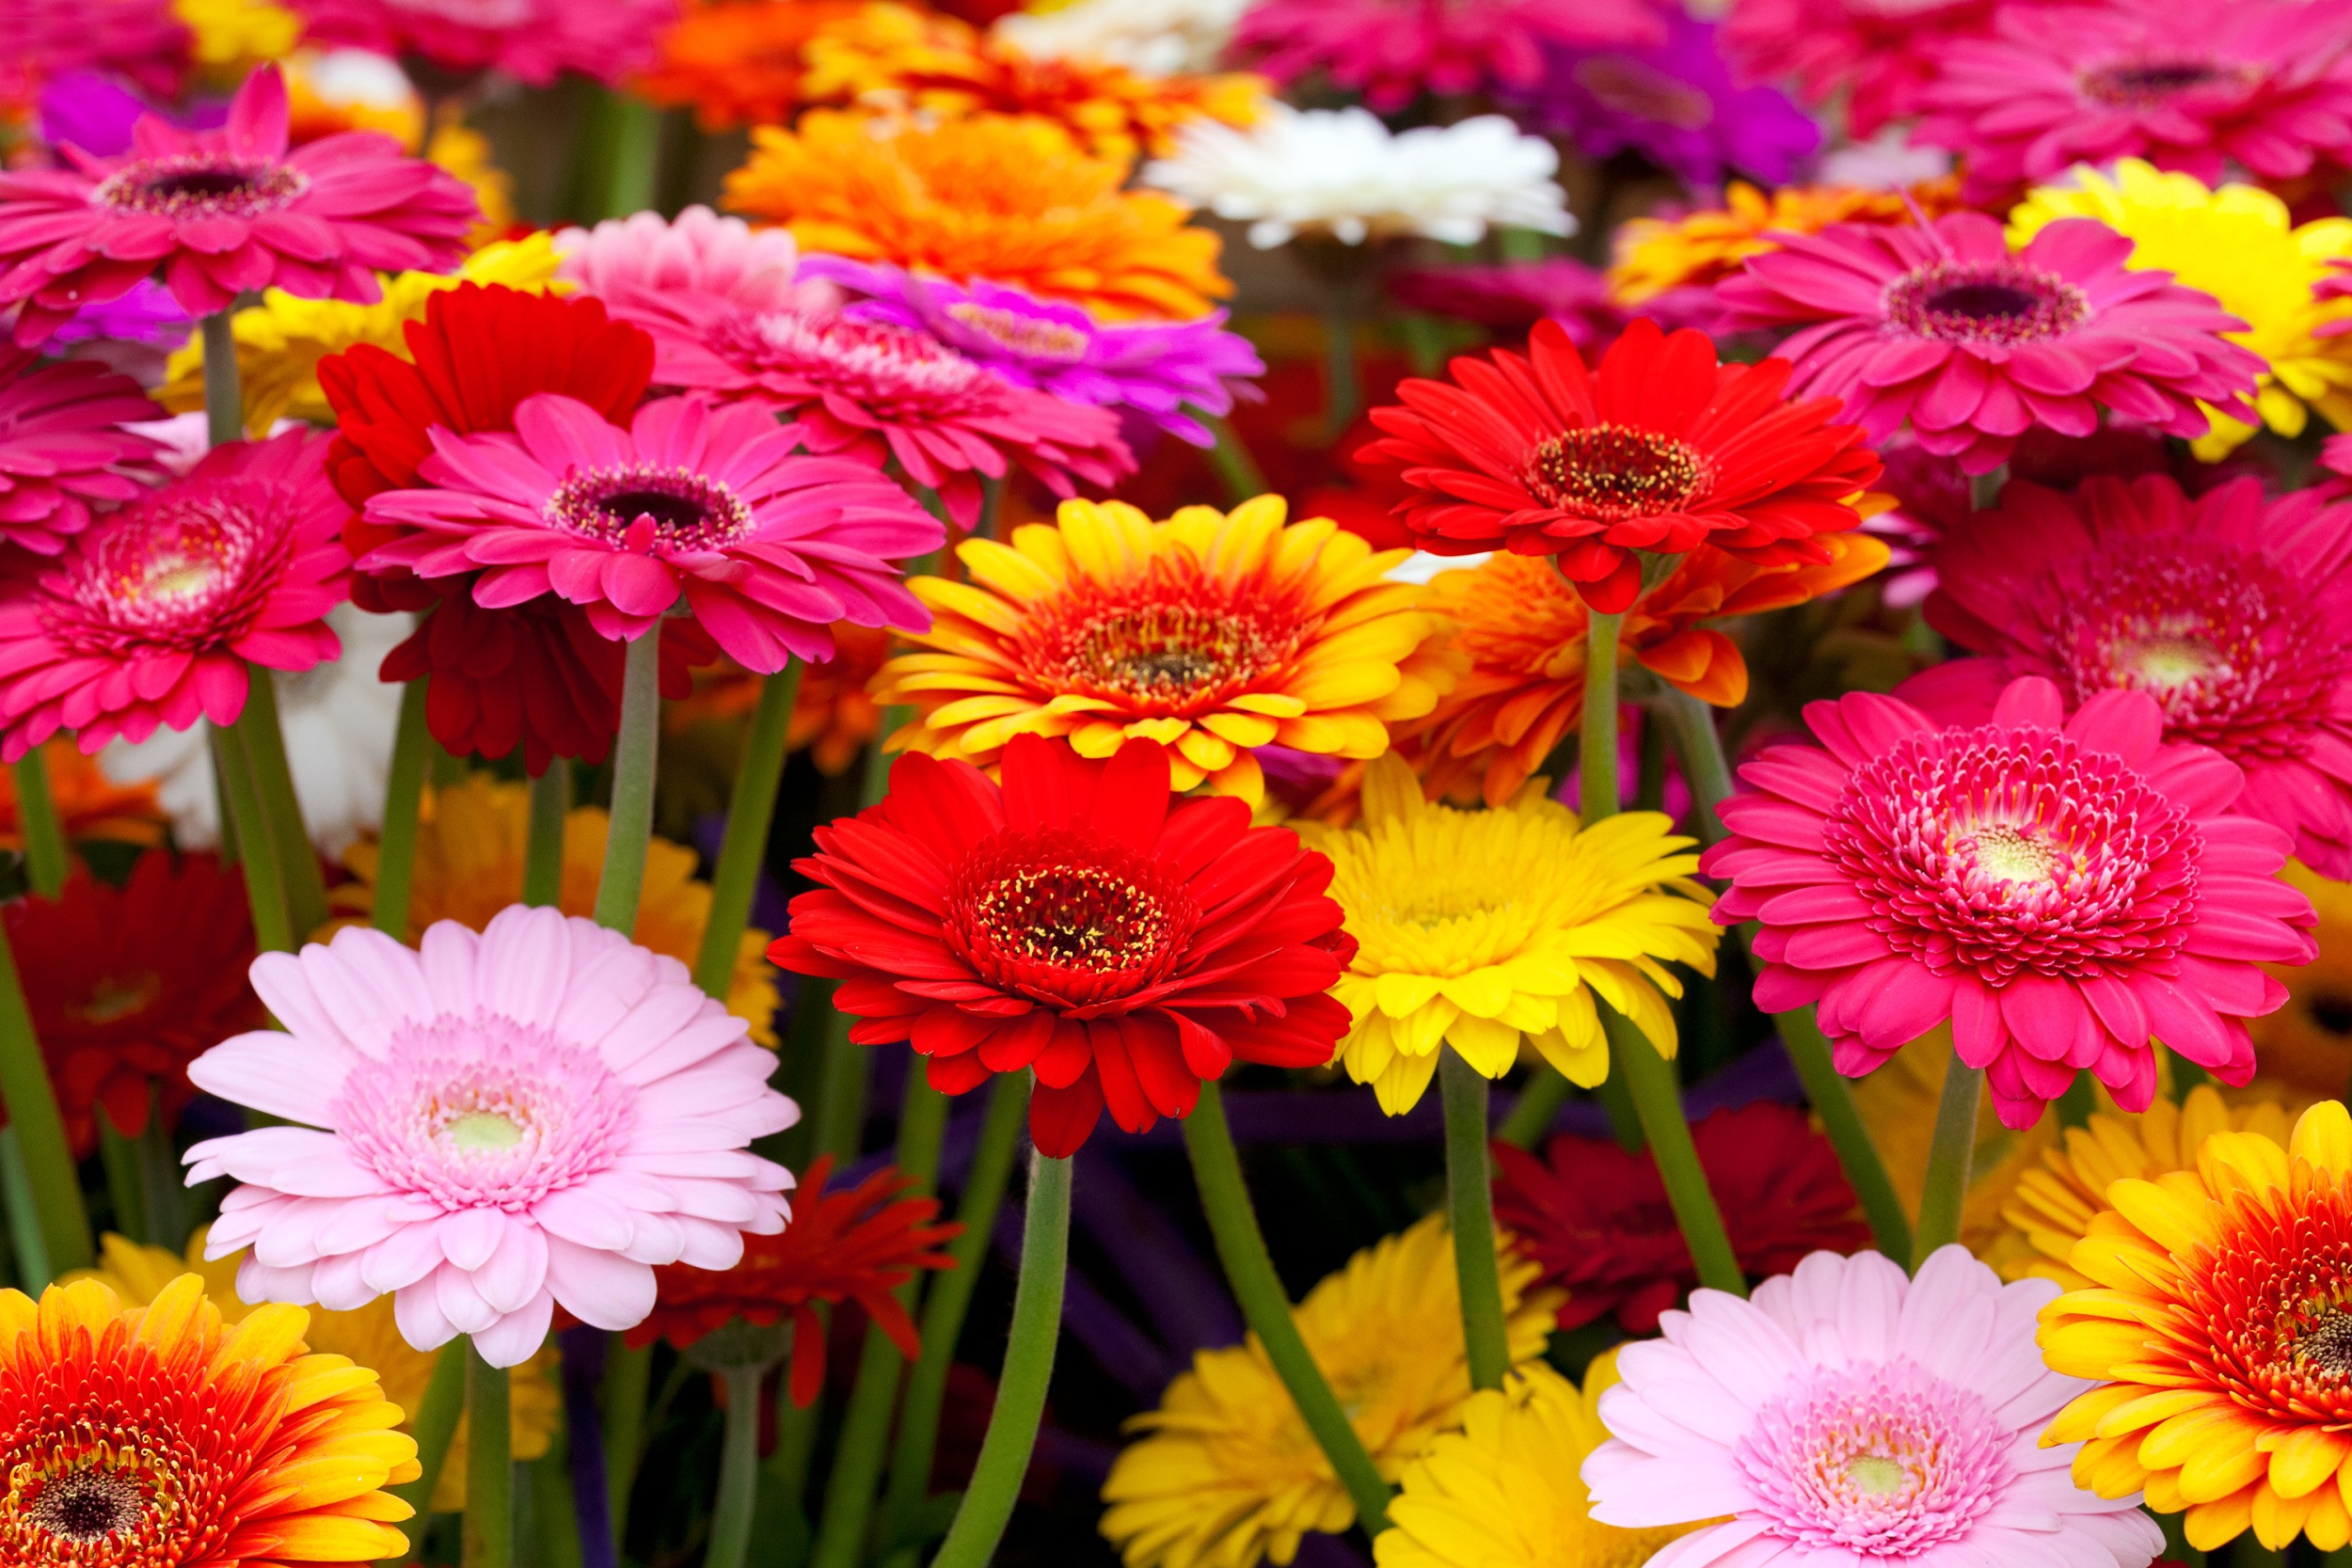 Brighten Up Your Shop with Vibrant Spring Blooms